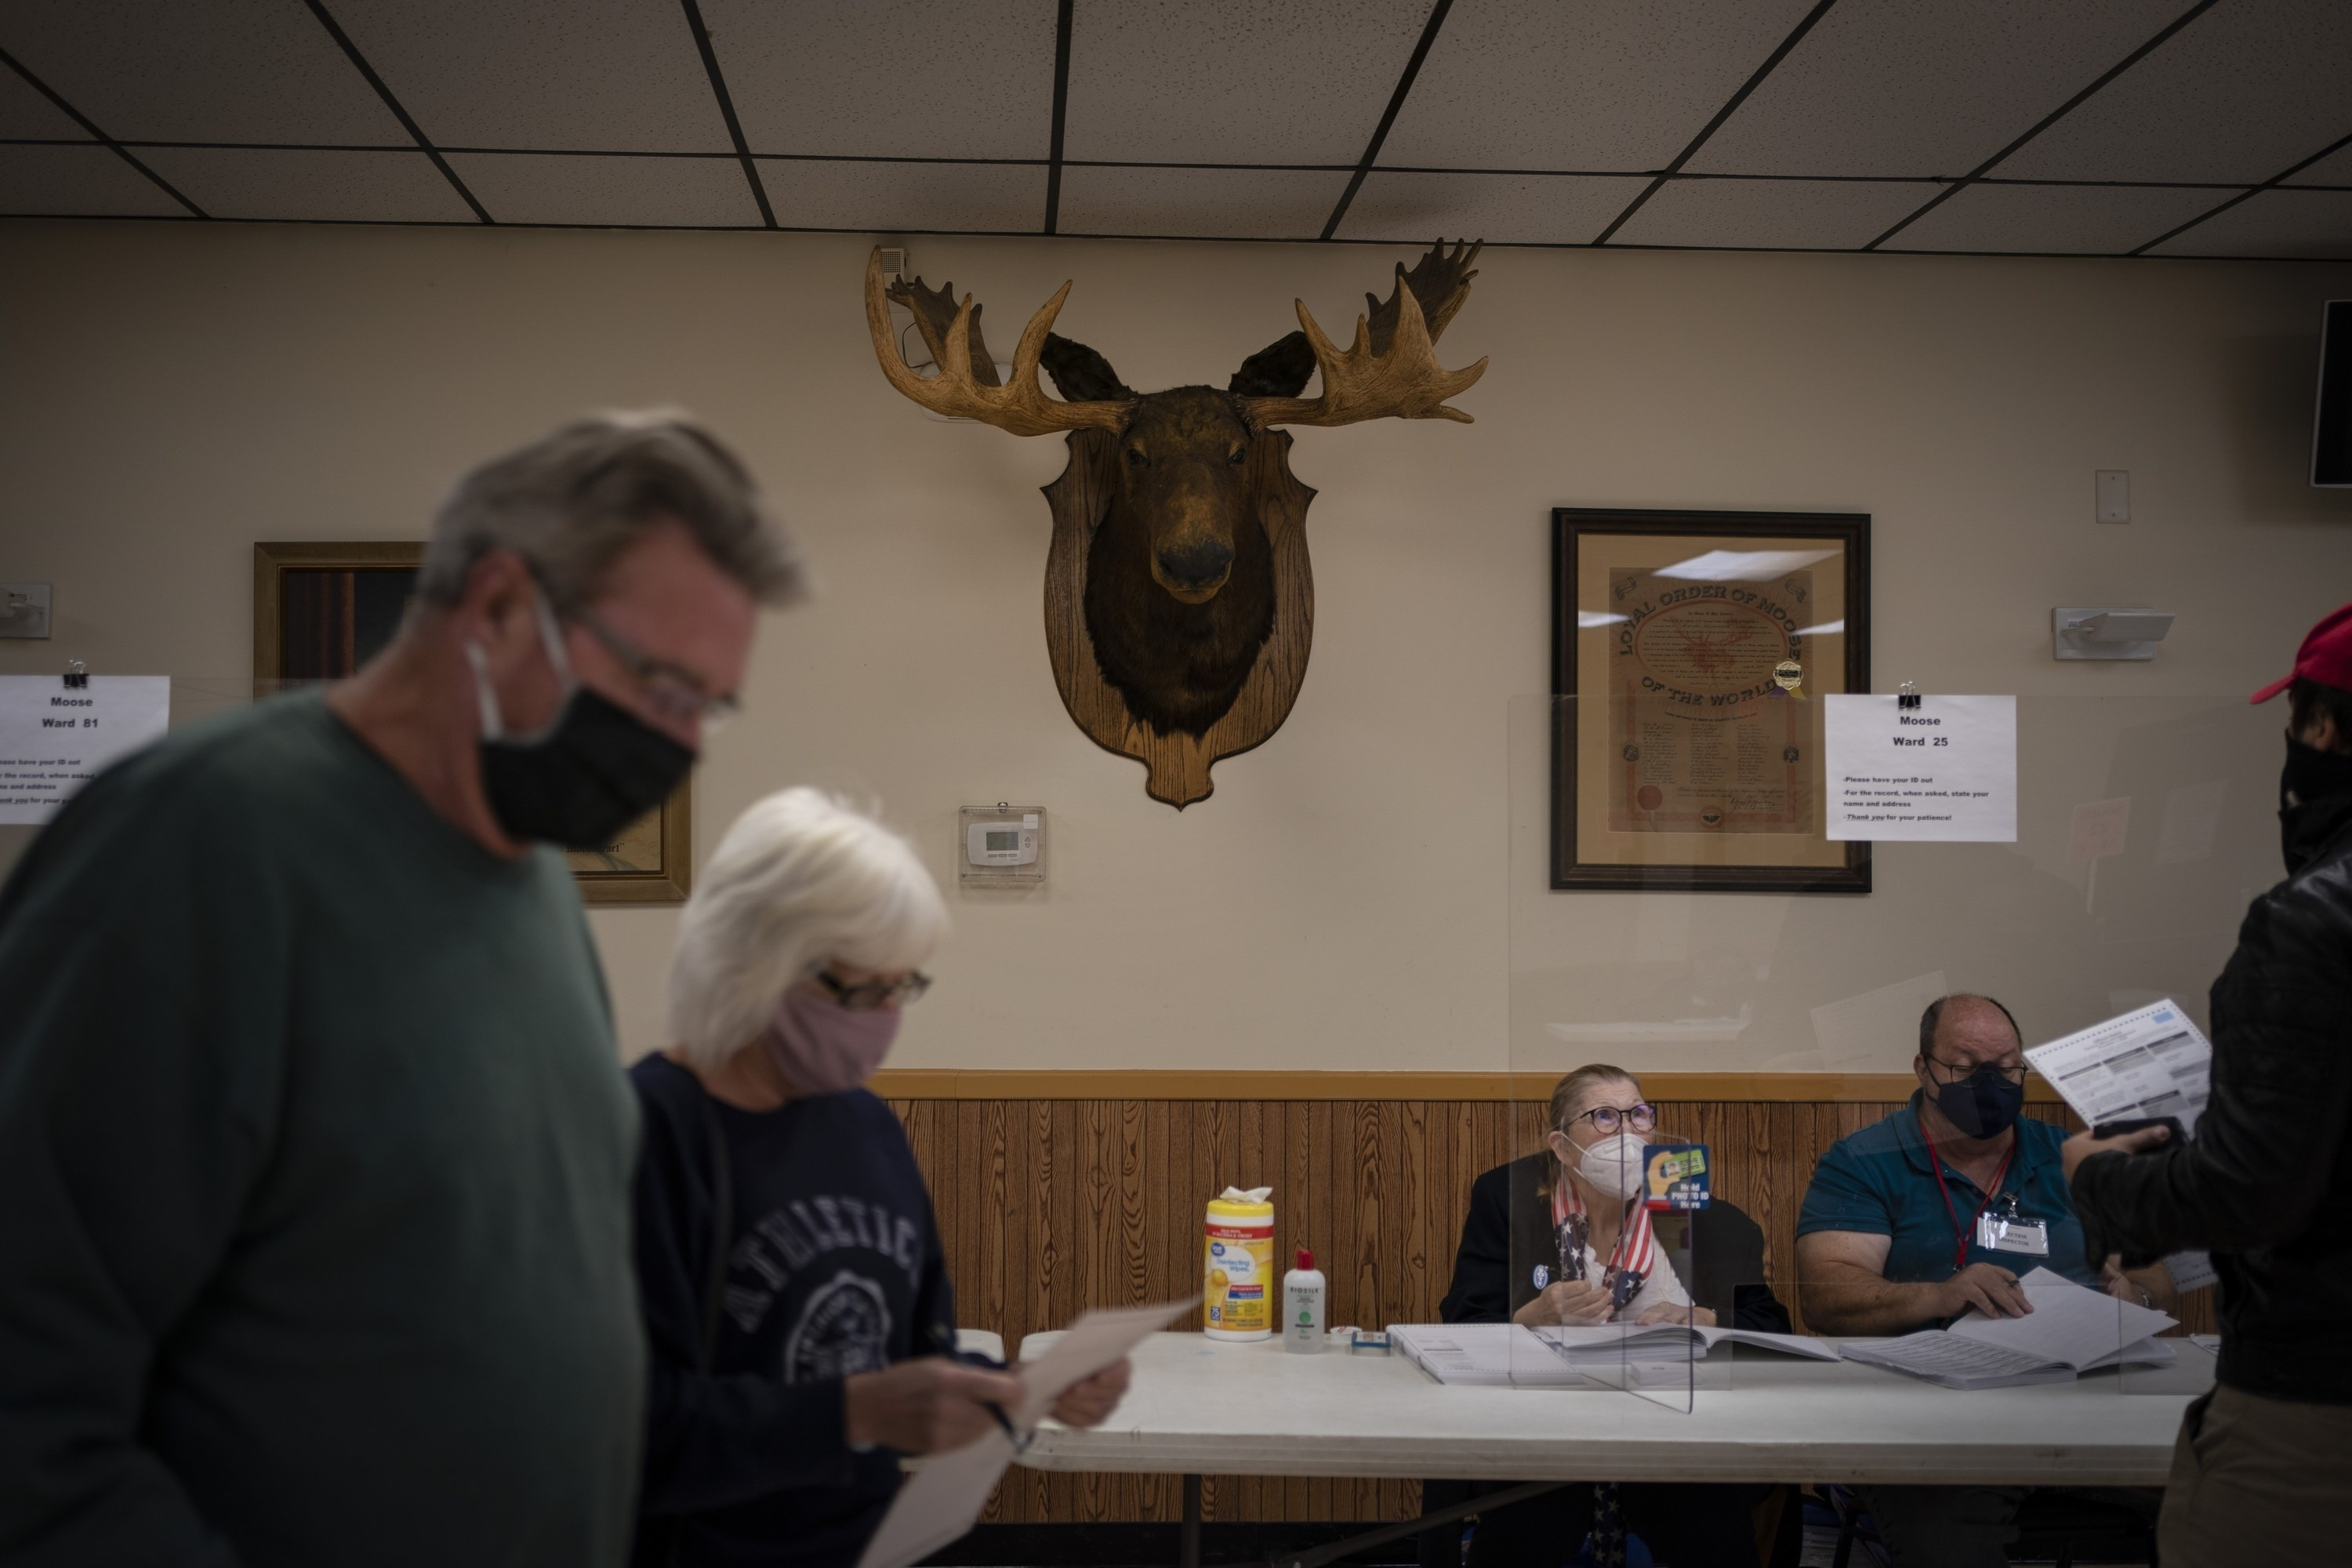 People voting underneath a giant moose head.